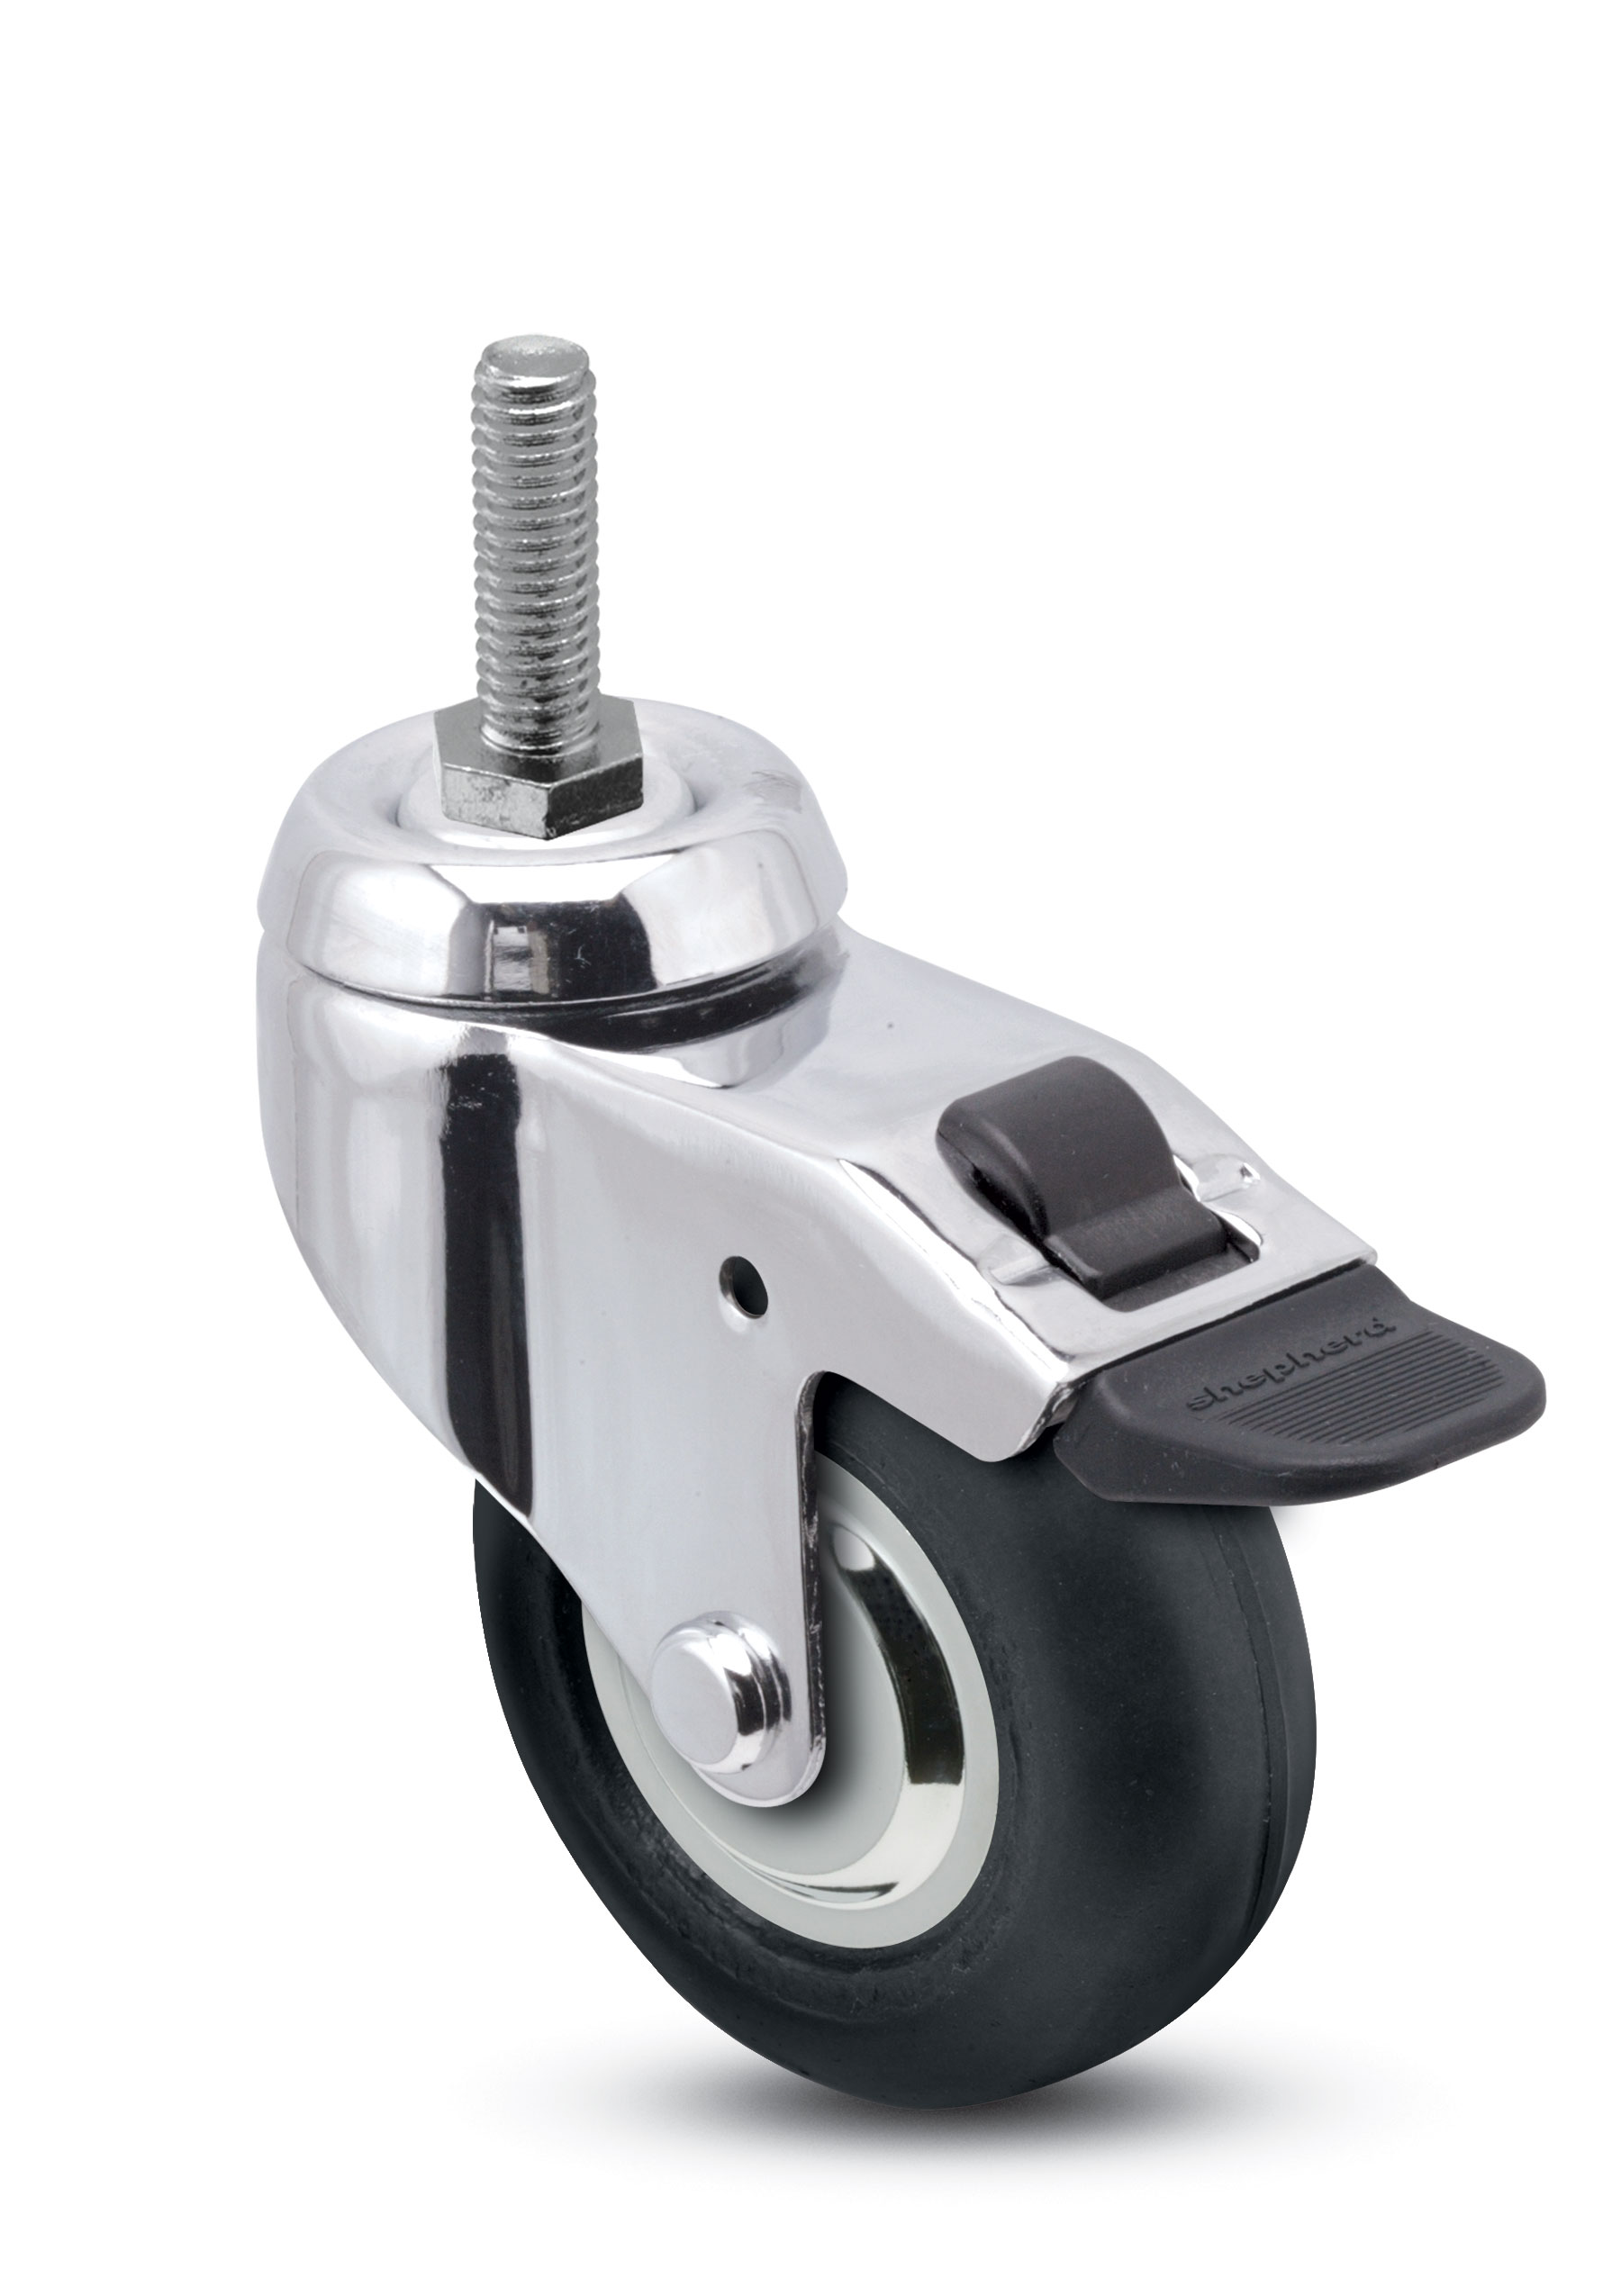 "3"" x 15/16"" Swivel Caster with a Monoprene (Donut) wheel, Threaded Stem connector, and Precision Ball Brng (#67135)"